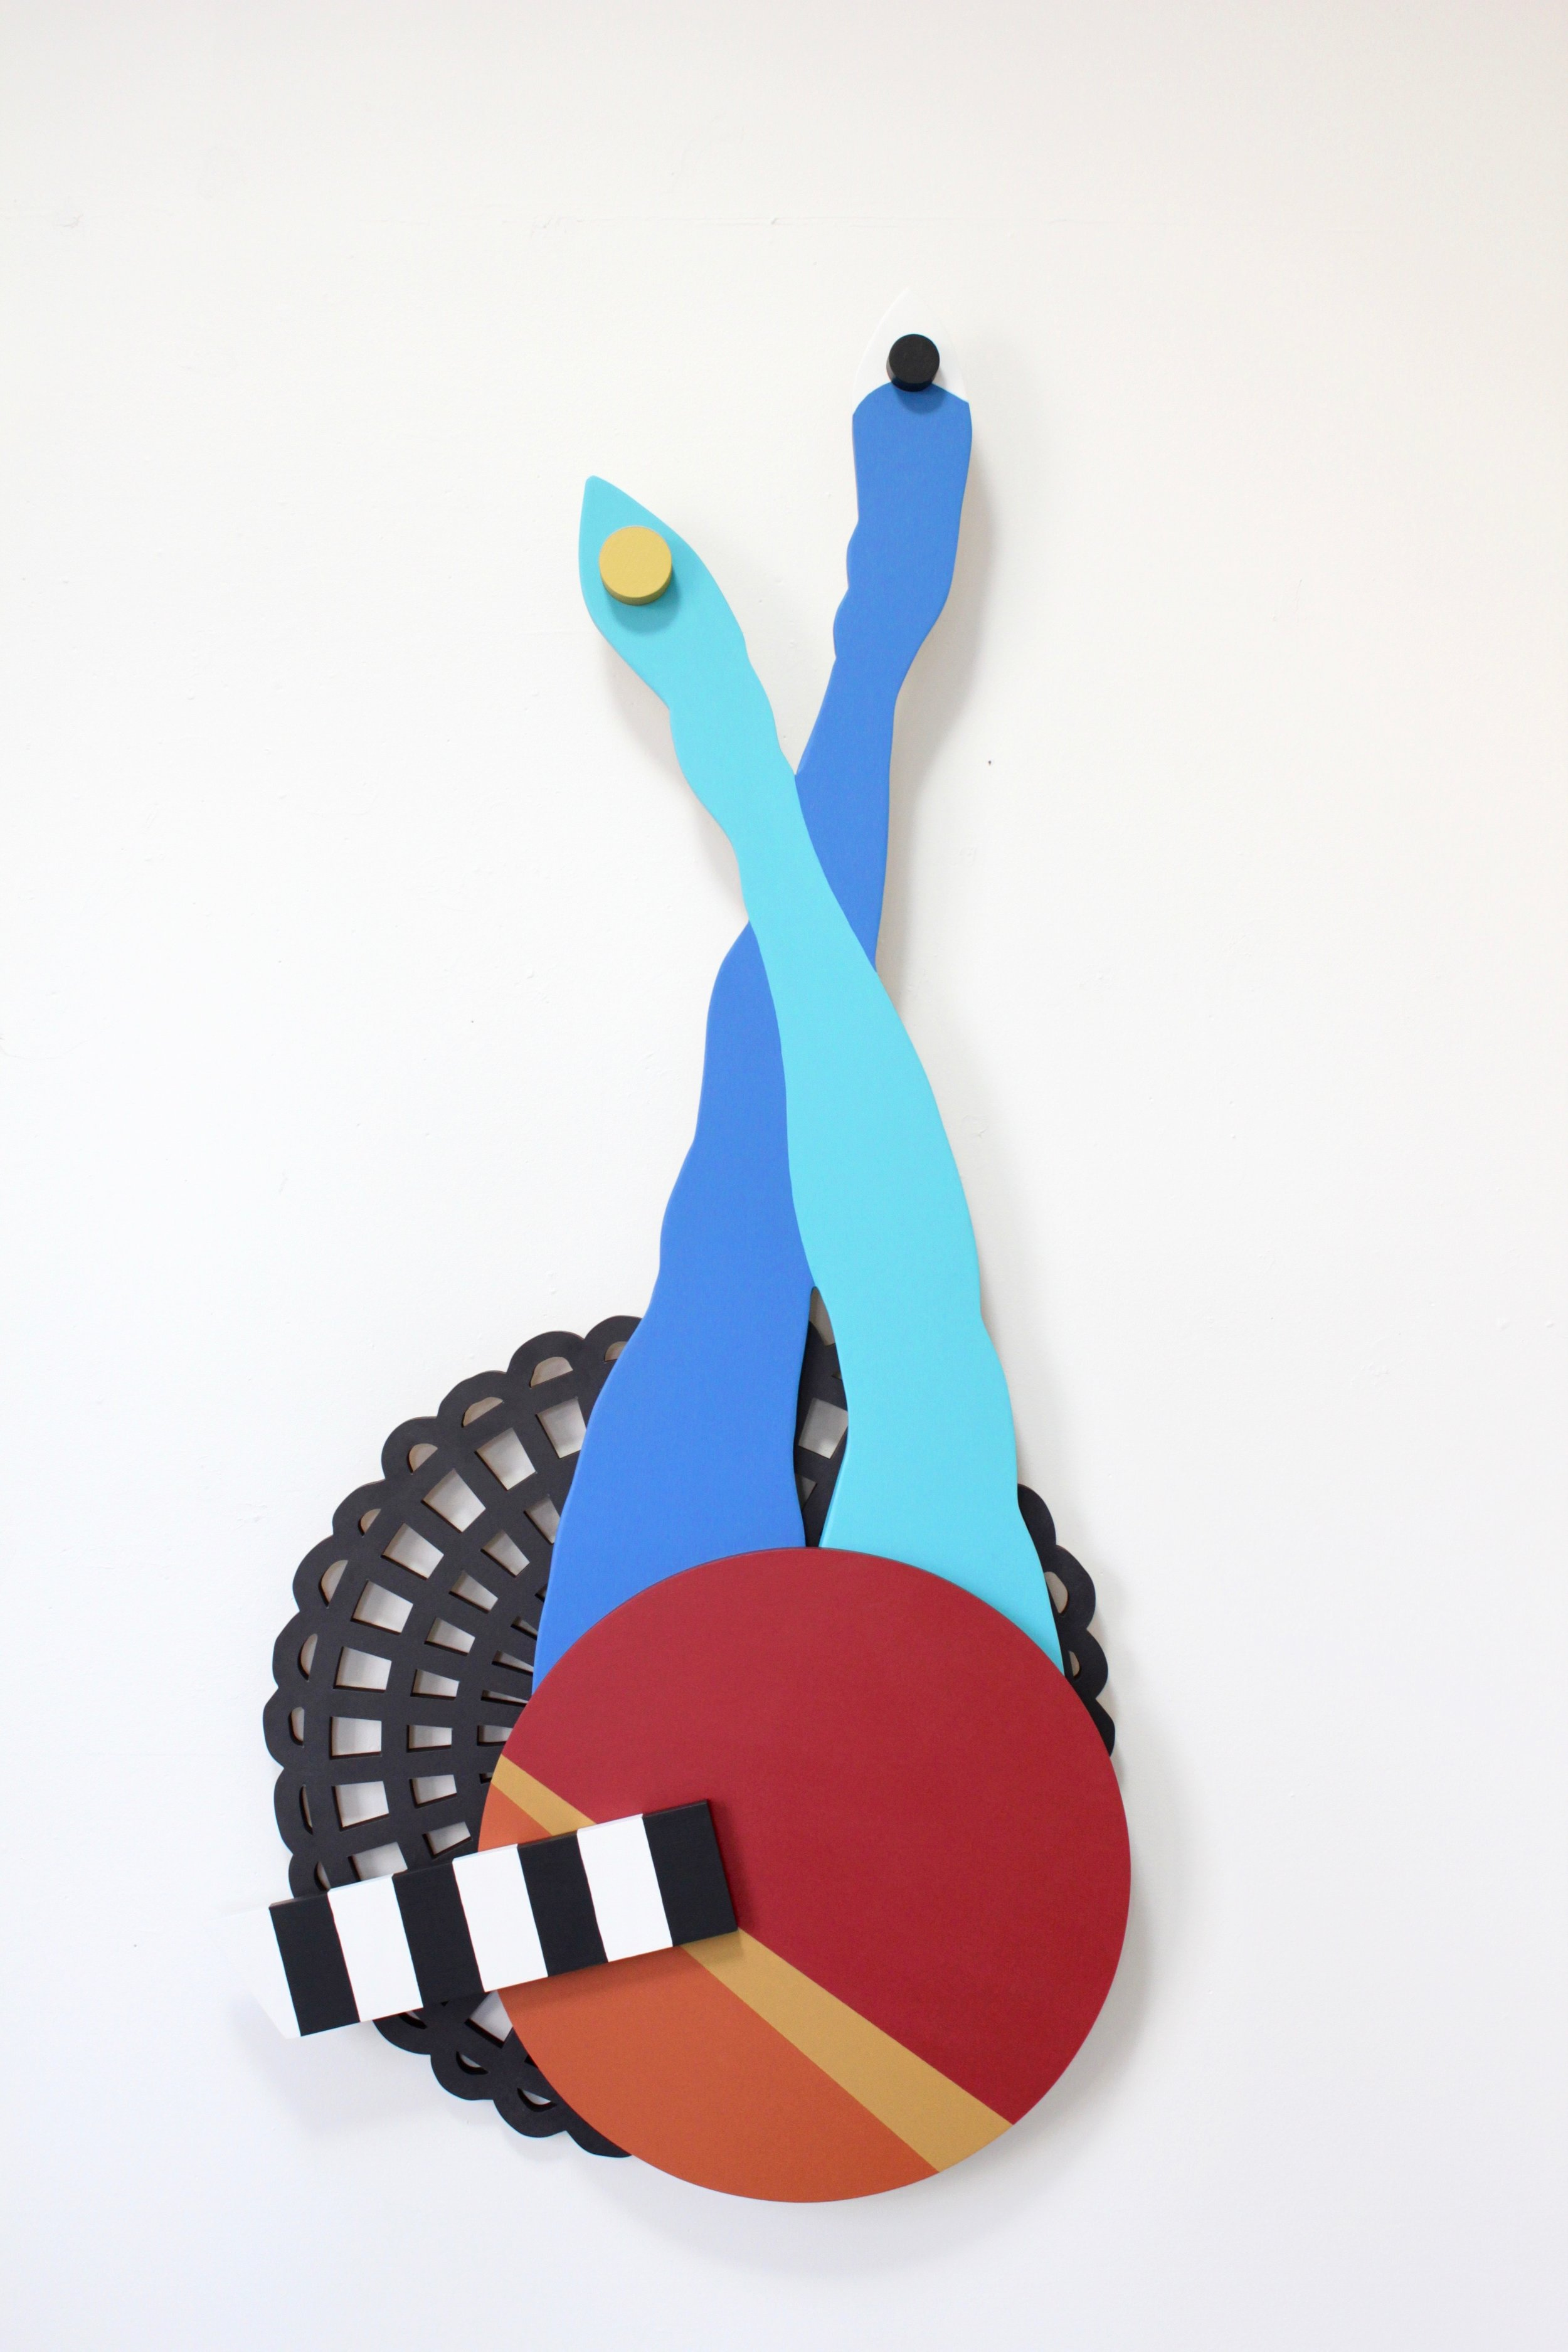 """Blue Legs - Angela Chrusciaki Blehm25.5"""" x 53"""" x 3"""" ink and latex paint on wood$1600currently exhibiting at THE VENDUE"""